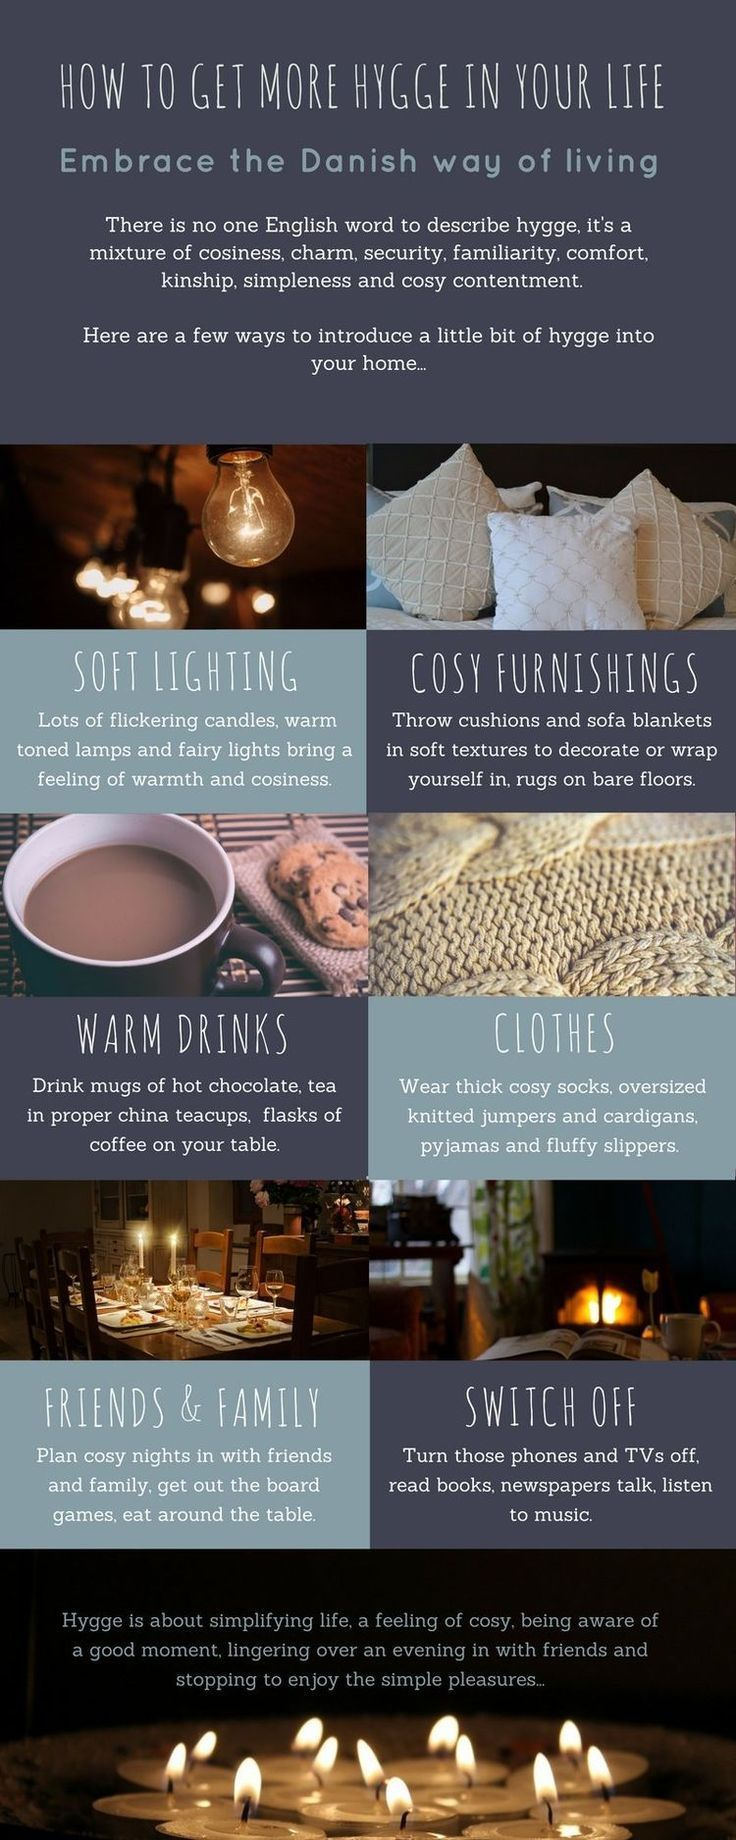 Why you need 'hygge' in your life...and how to find it! Come and find out some more about hygge and how to get a bit more into your life! Infographic to show you how to begin to create some hygge in your home and life.